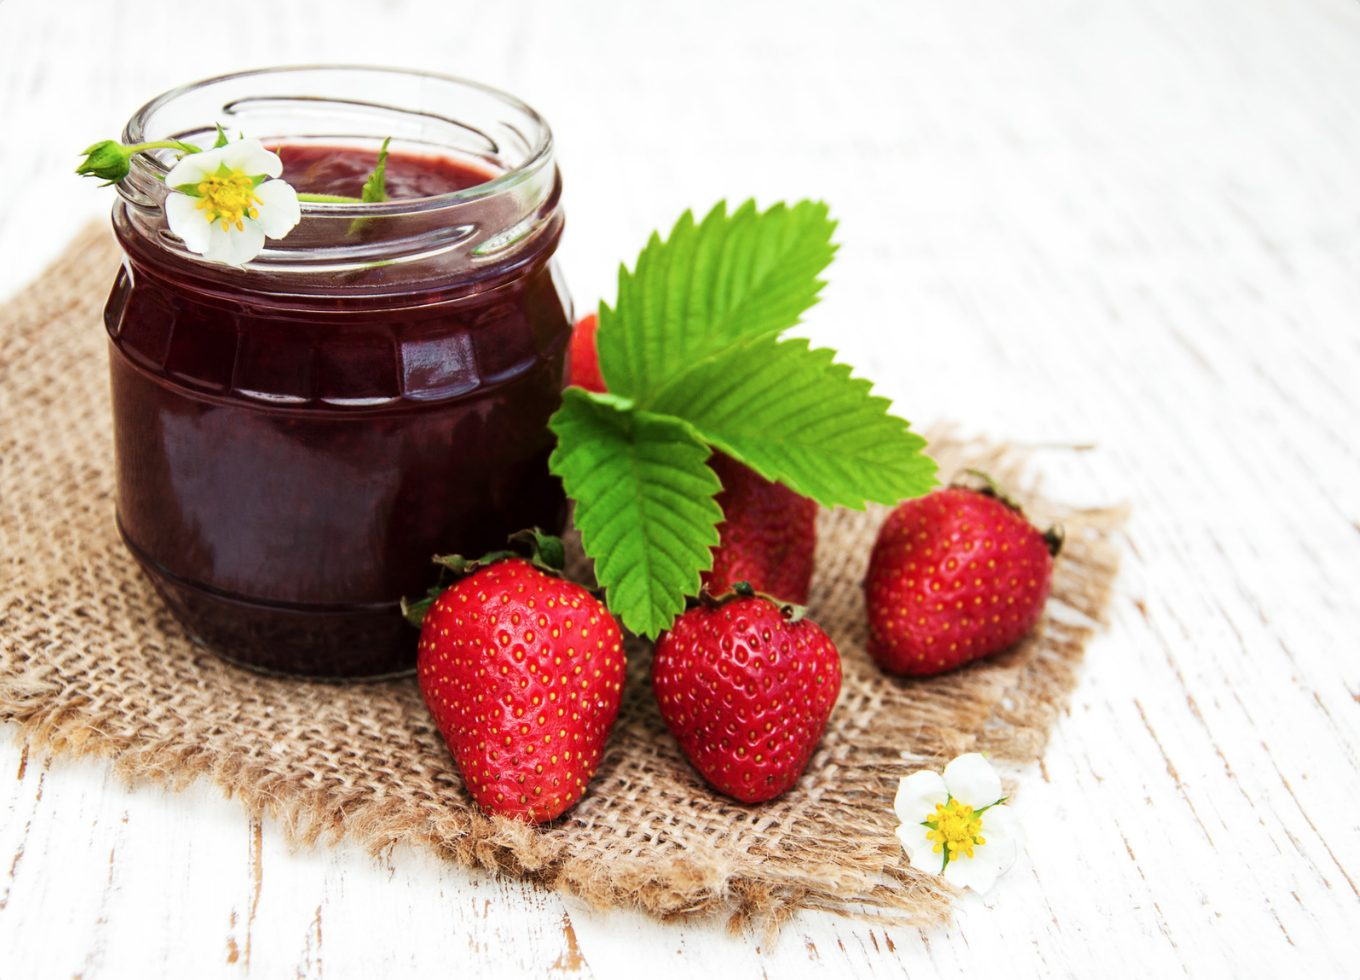 weed strawberry jam in a glass jar with strawberries beside the jar.